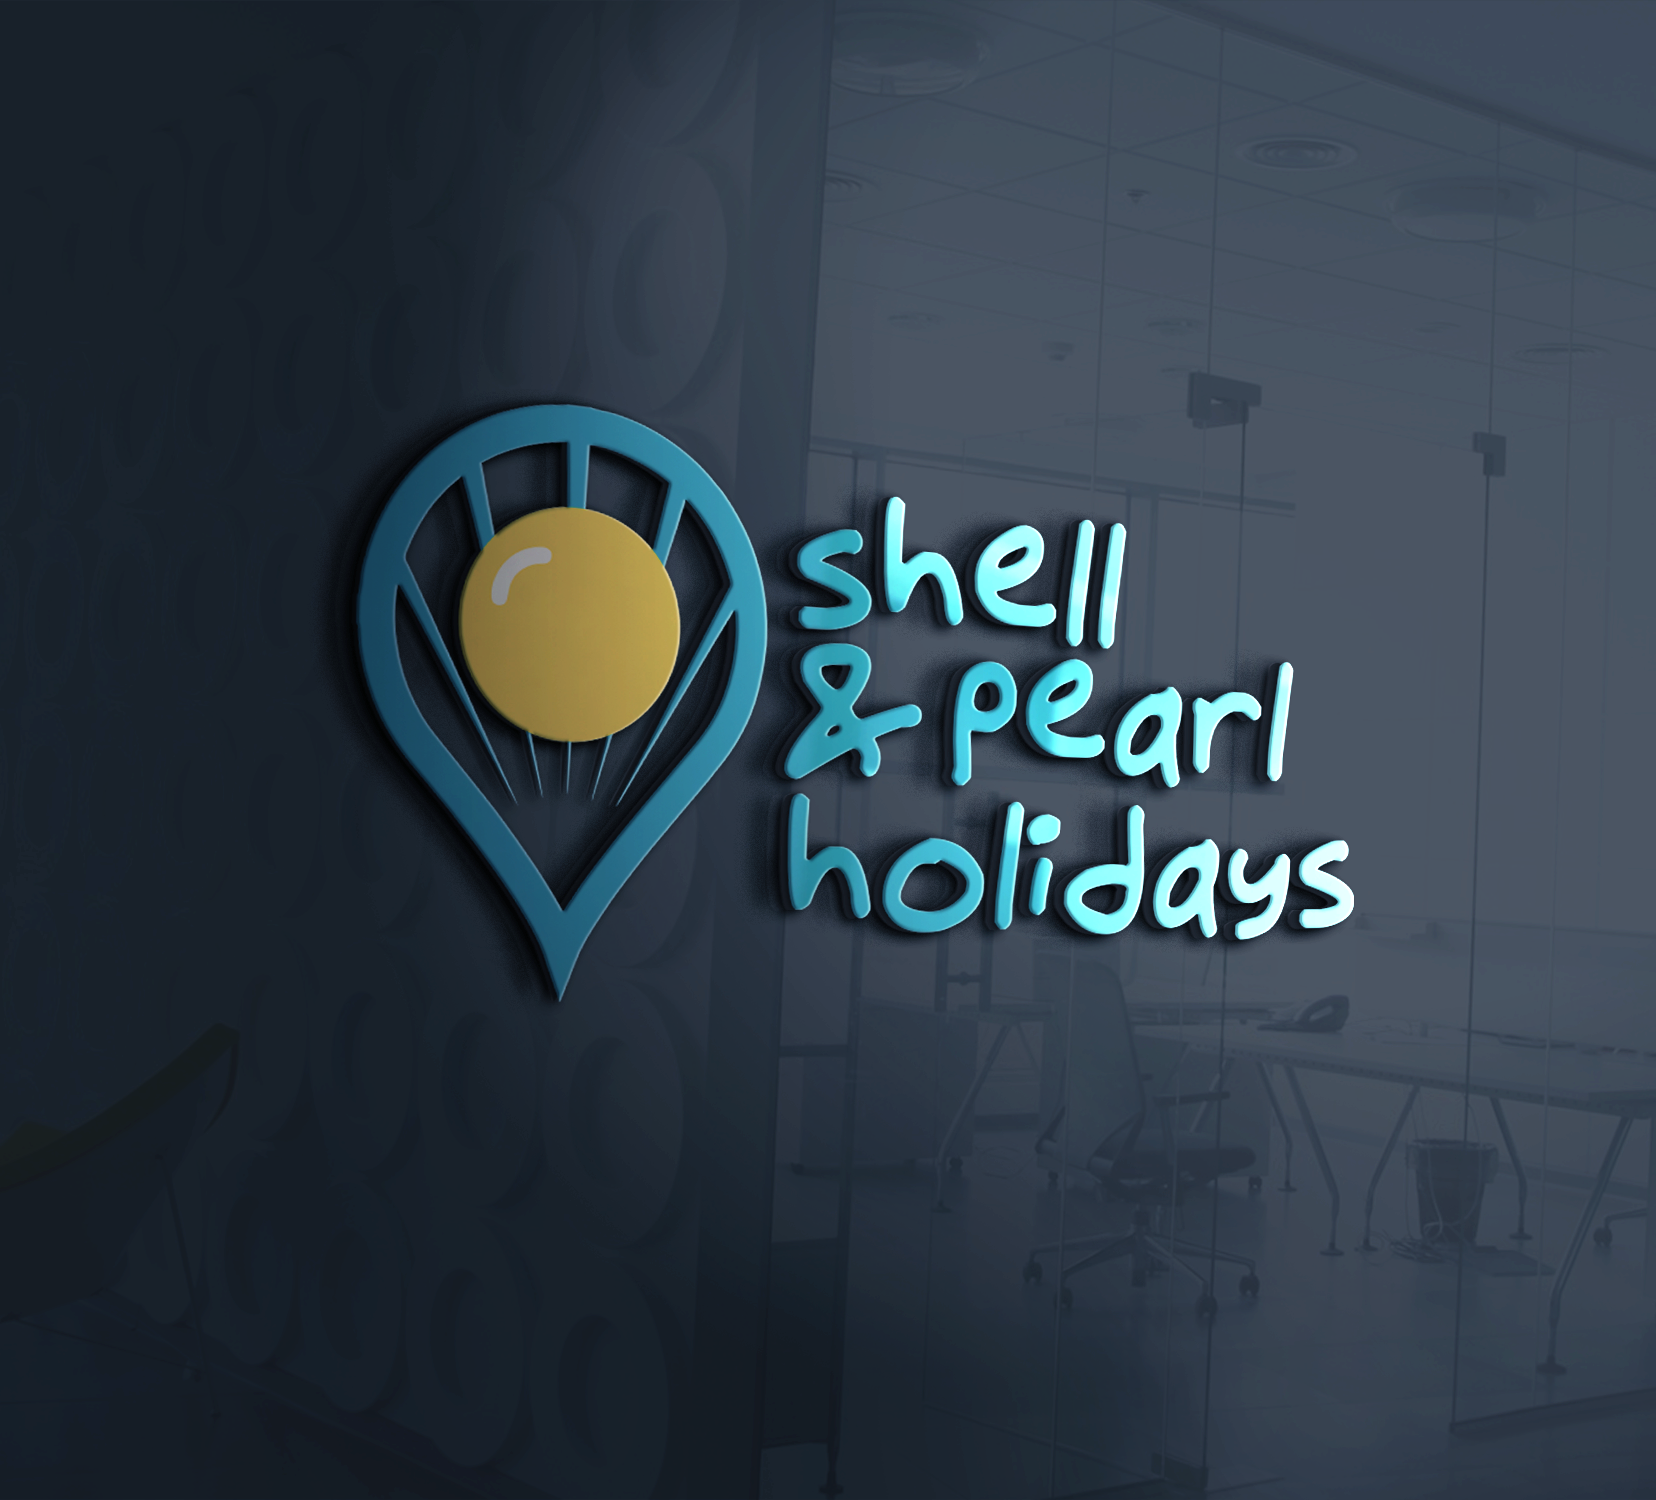 SHELL & PEARL HOLIDAYS